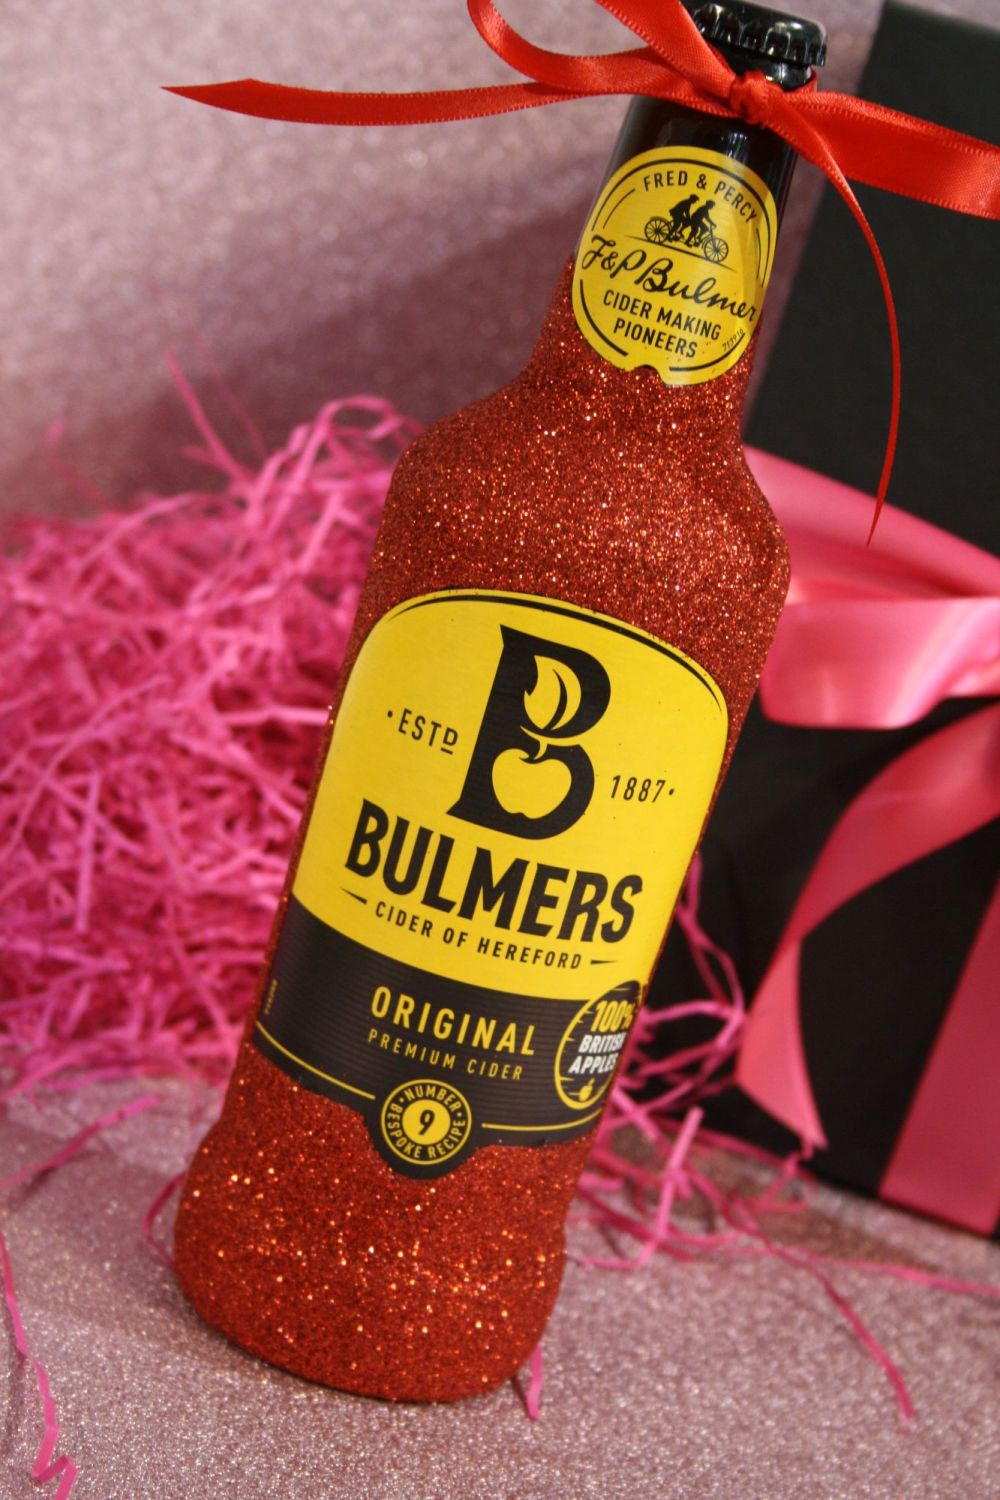 Glittery Large Bottle of Thatchers or Bulmers Cider